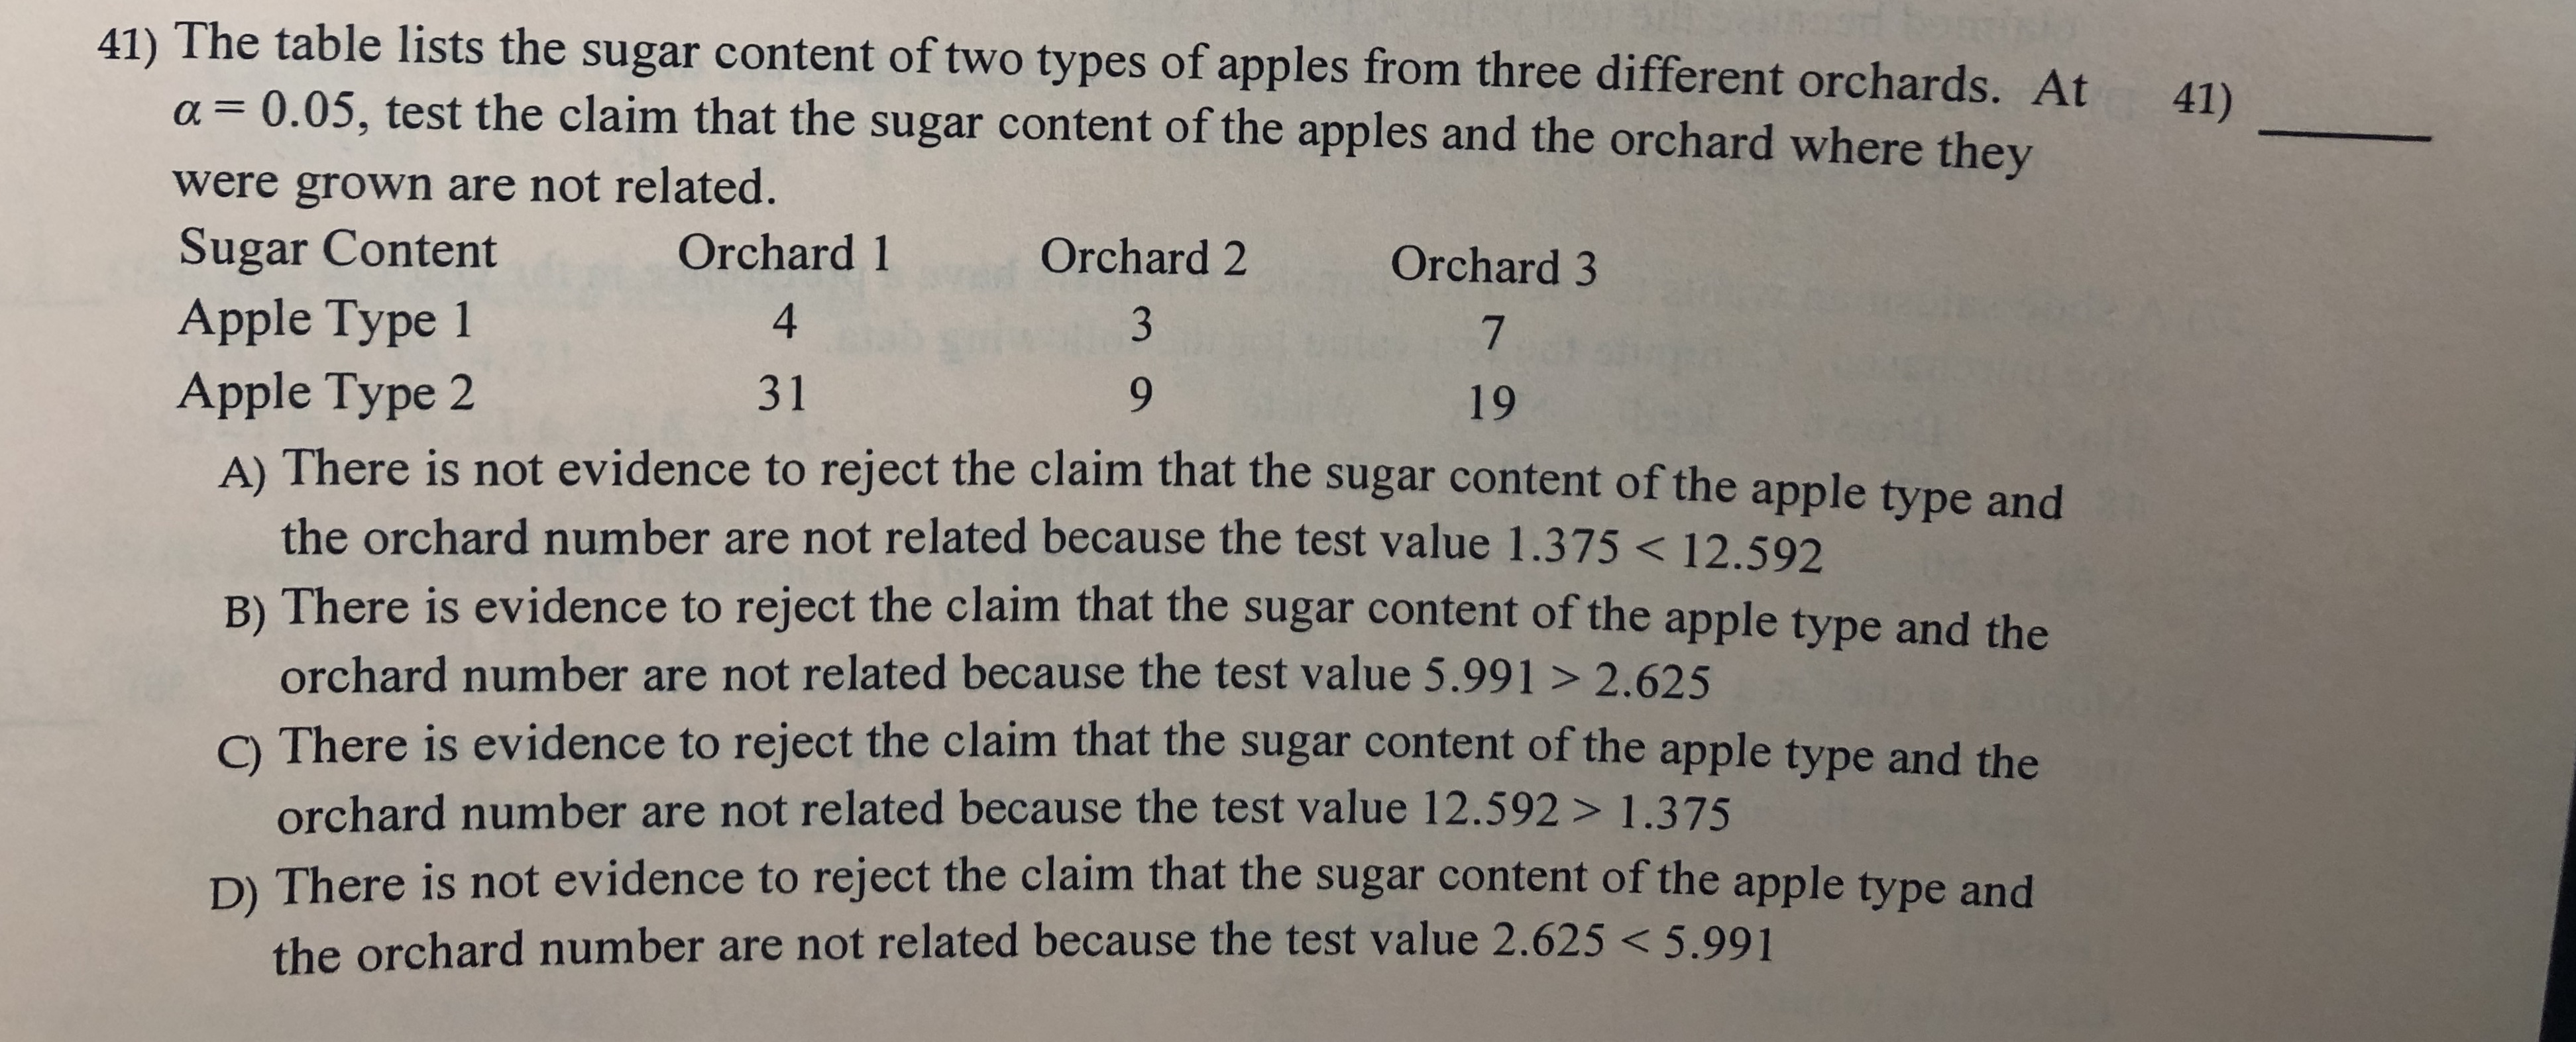 41) The table lists the sugar content of two types of apples from three different orchards. At a 0.05, test the claim that the sugar content of the apples and the orchard where they 41) 1 were grown are not related. Sugar Content Apple Type 1 Orchard 1 Orchard 2 Orchard 3 4 3 7 31 Apple Type 2 A) There is not evidence to reject the claim that the sugar content of the apple type and 19 the orchard number are not related because the test value 1.375< 12.592 B) There is evidence to reject the claim that the sugar content of the apple type and the orchard number are not related because the test value 5.991 > 2.625 C There is evidence to reject the claim that the sugar content of the apple type and the orchard number are not related because the test value 12.592 > 1.375 D) There is not evidence to reject the claim that the sugar content of the apple type and the orchard number are not related because the test value 2.625 < 5.99 1